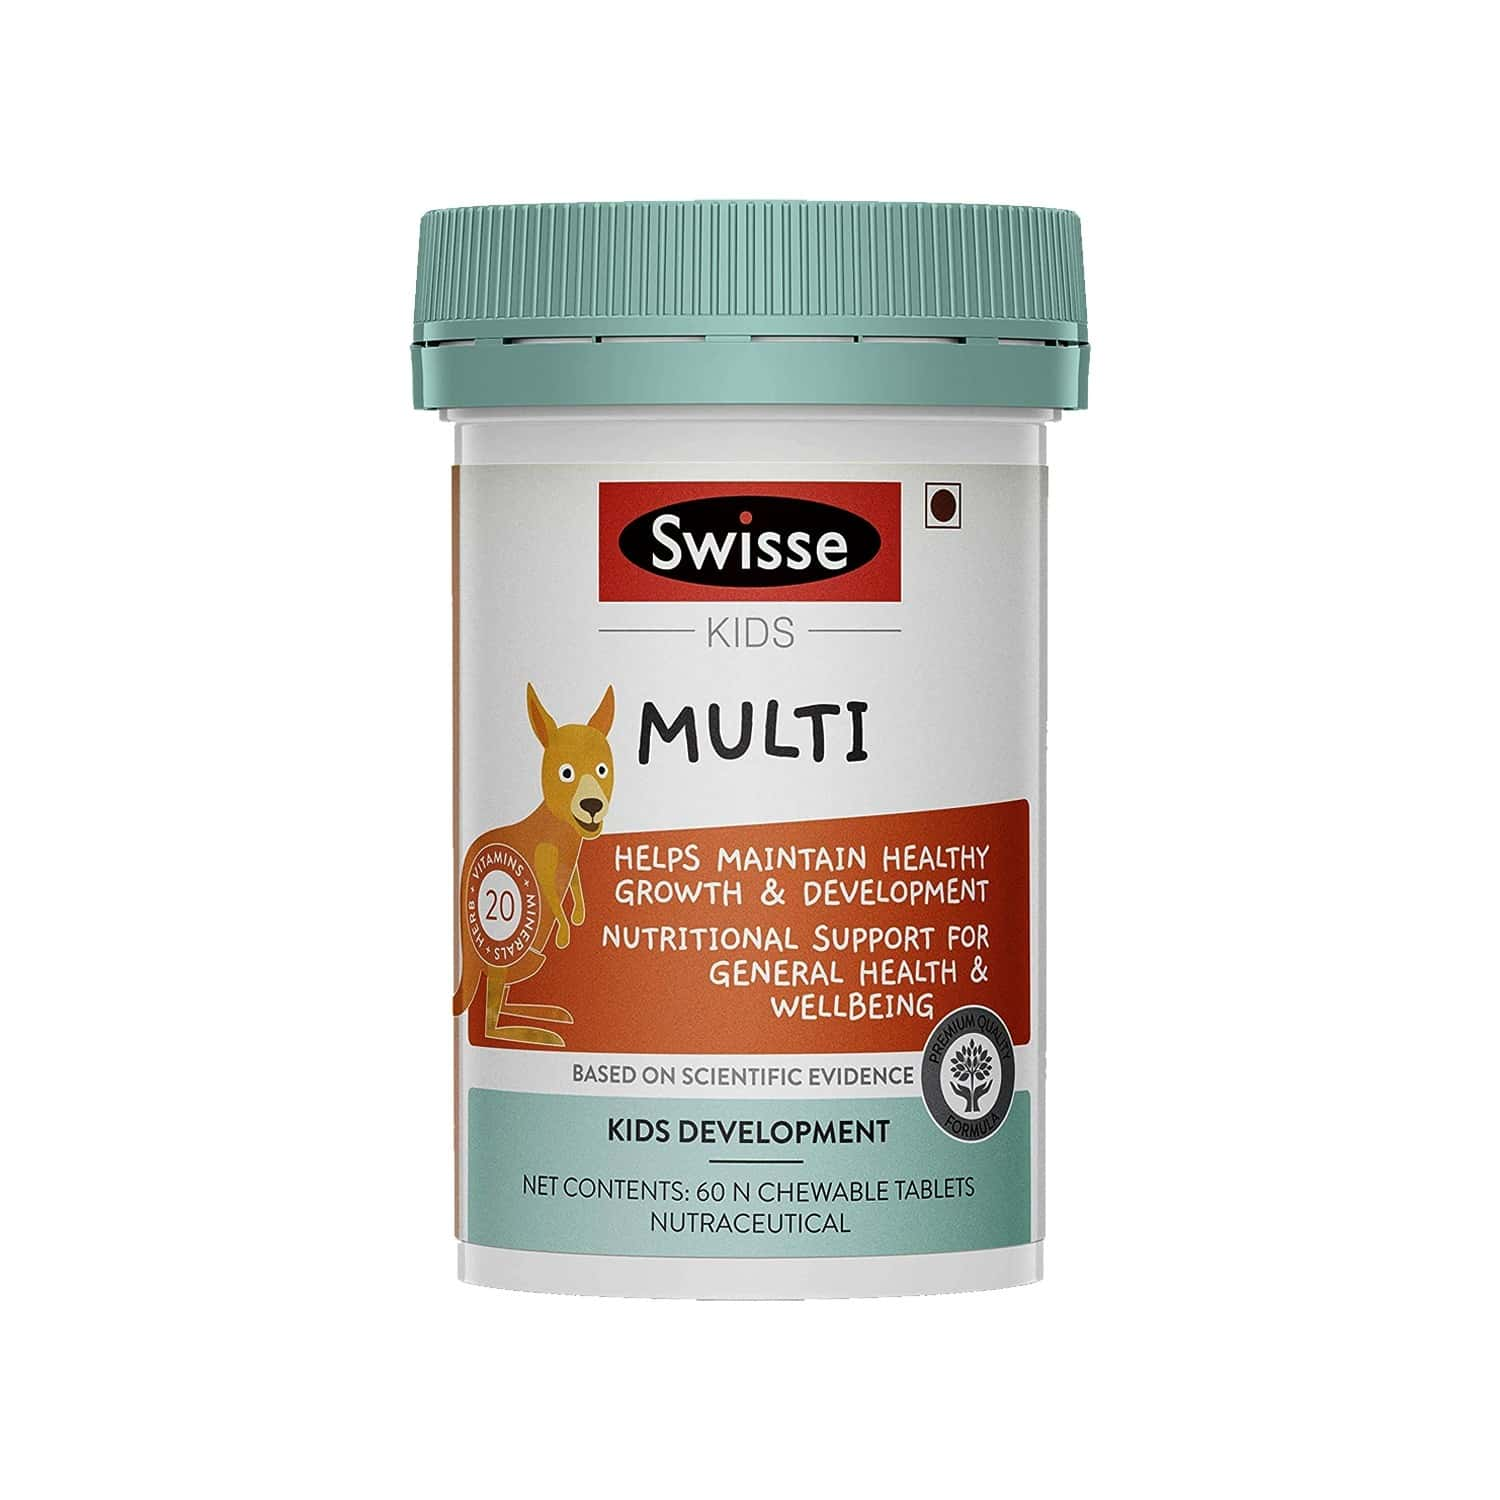 Swisse Kids Multi Supplements (20 Vitamins Minerals And Herbs) For Healthy Growth And Development In Children (5-12 Years) - 60 Chewable Tablets